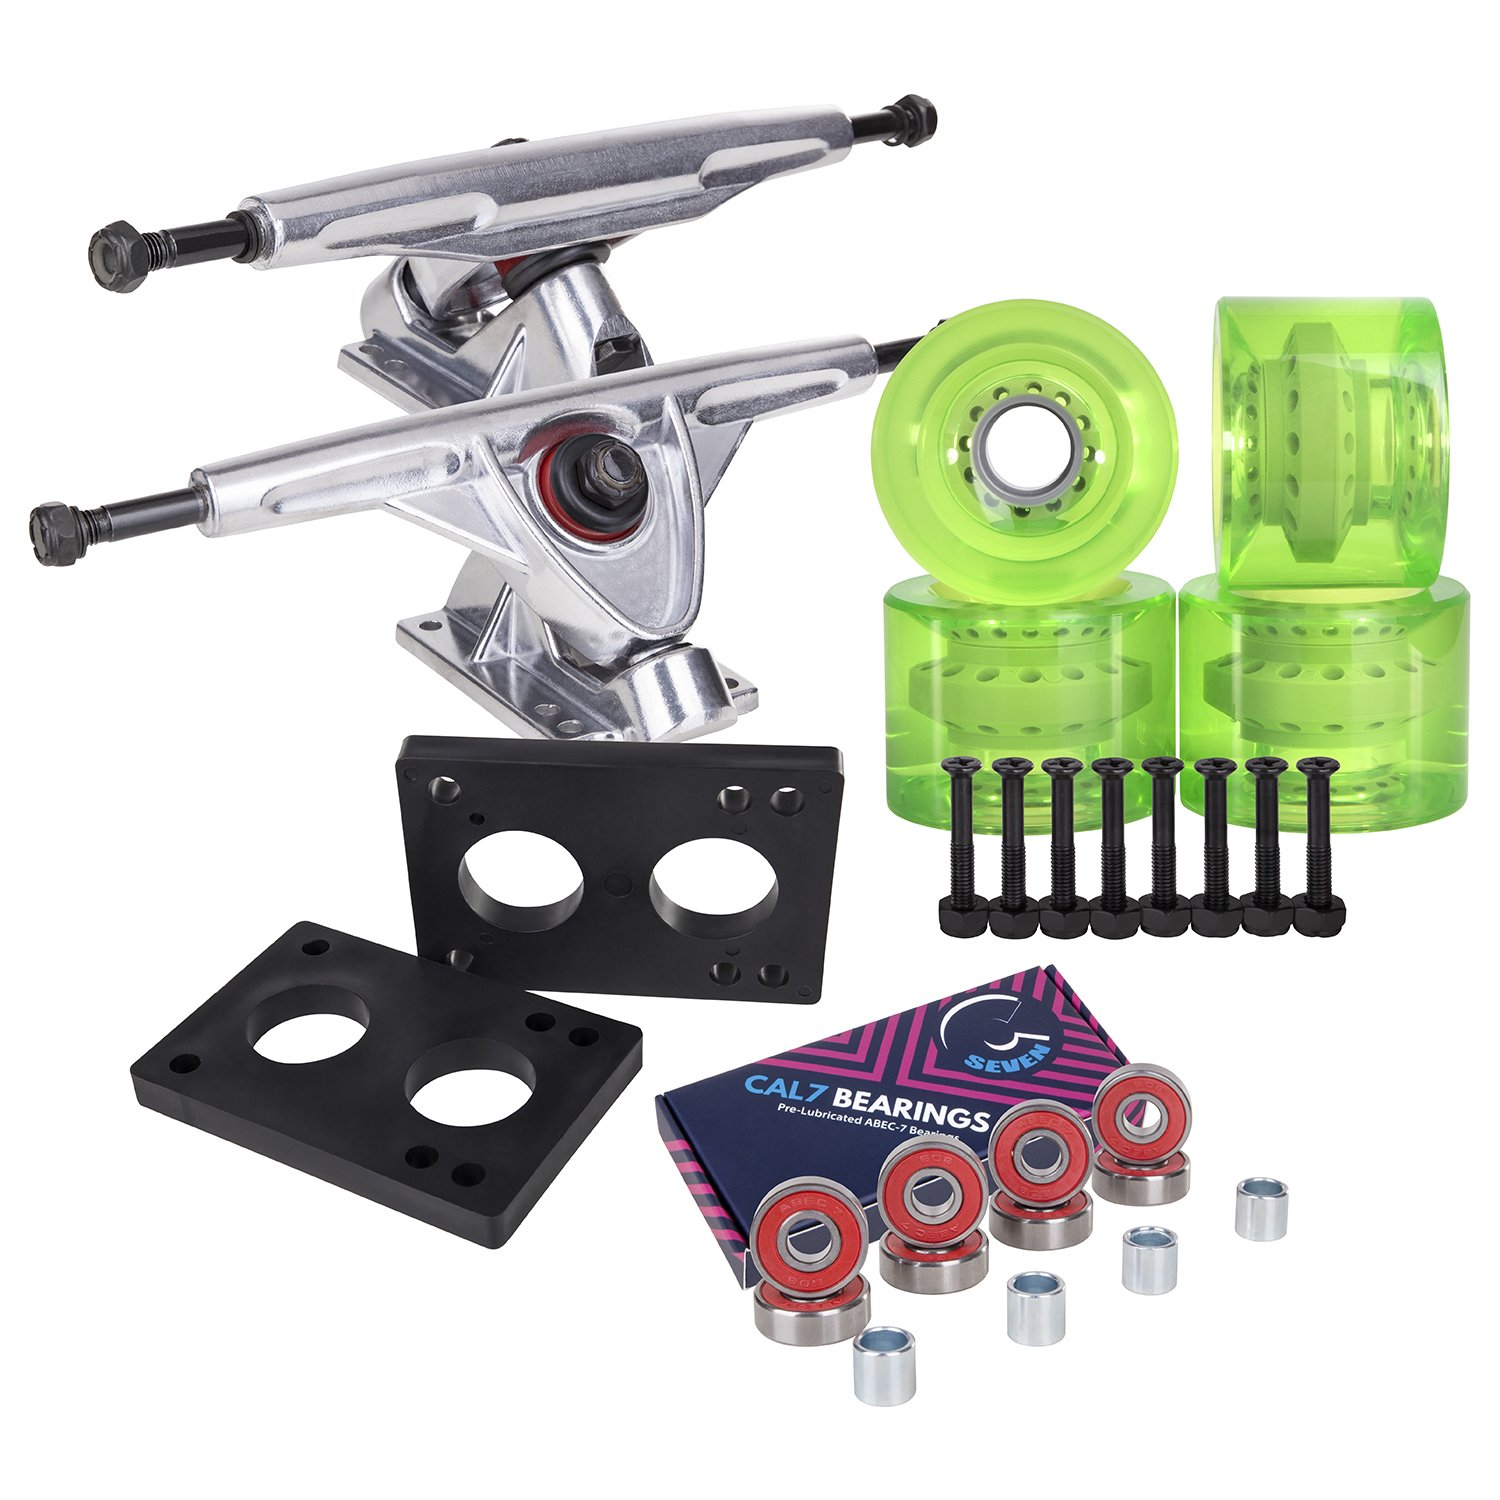 Cal 7 Longboard Skateboard Combo Package with 70mm Wheels & 180mm Lightweight Aluminum Trucks, Bearings Complete Set & Steel Hardware (Silver Truck + Transparent Green Wheels) by Cal 7